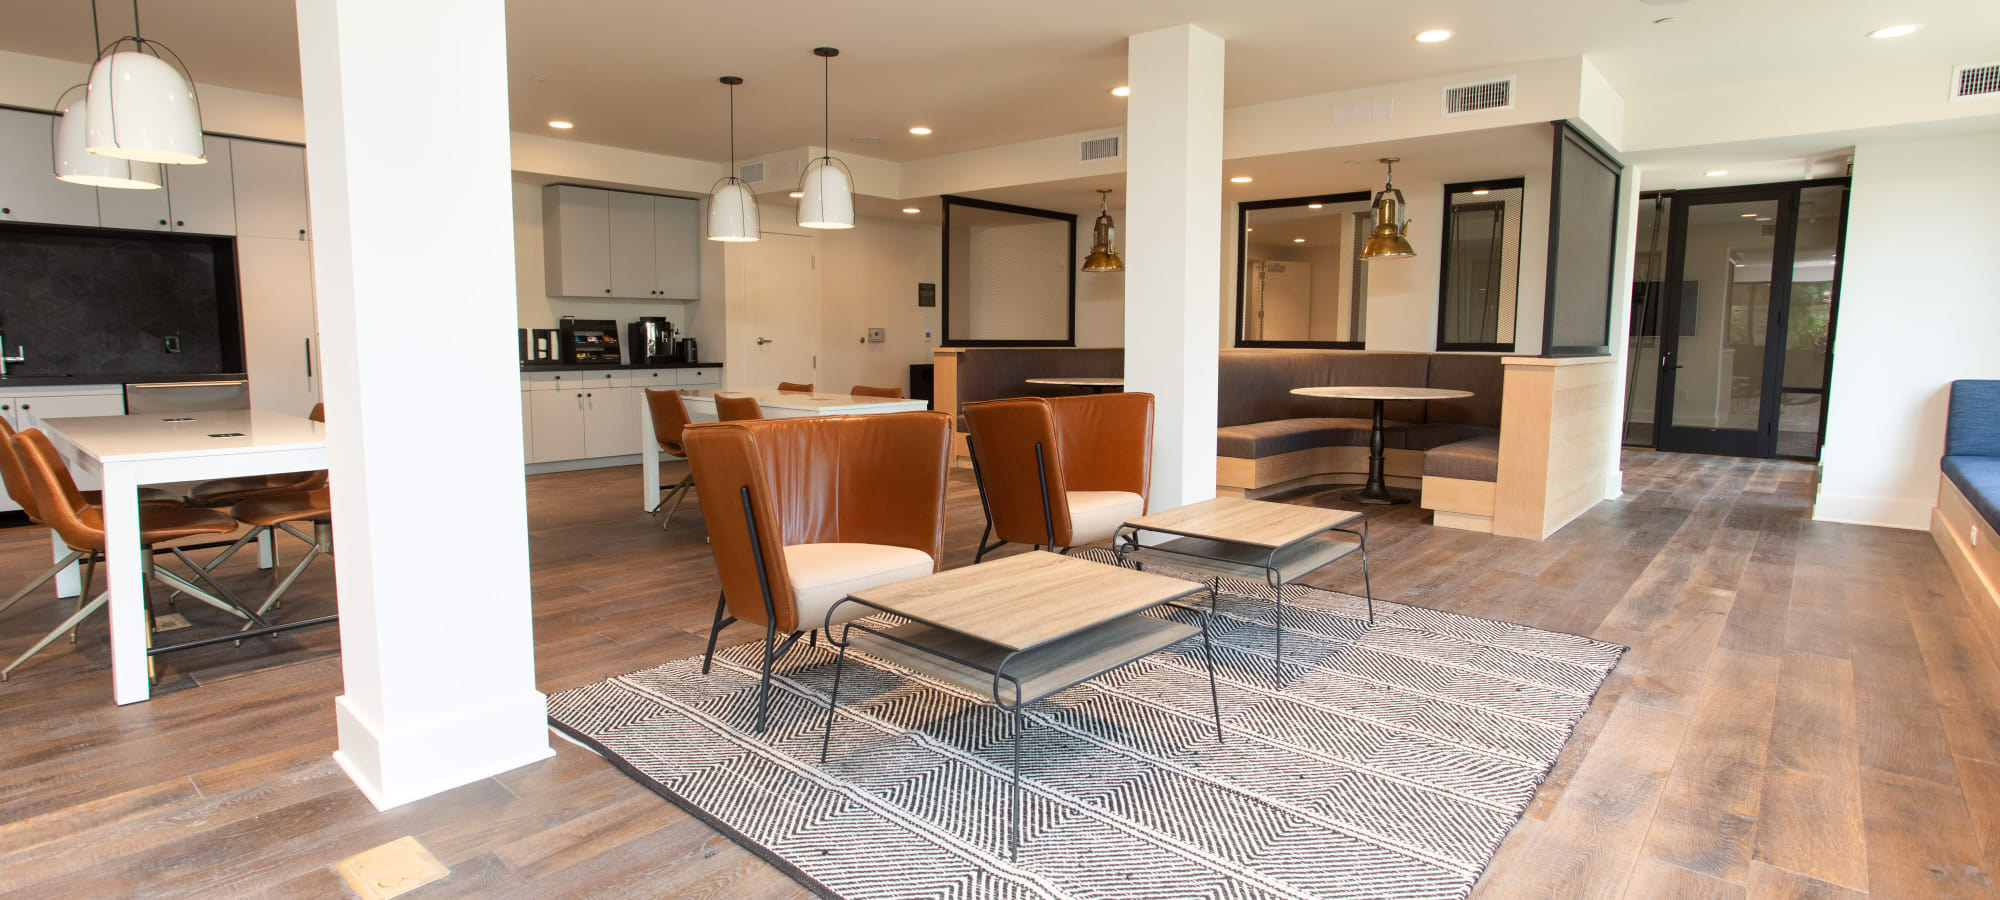 Photos | Lakeside Drive Apartments in Tempe, AZ